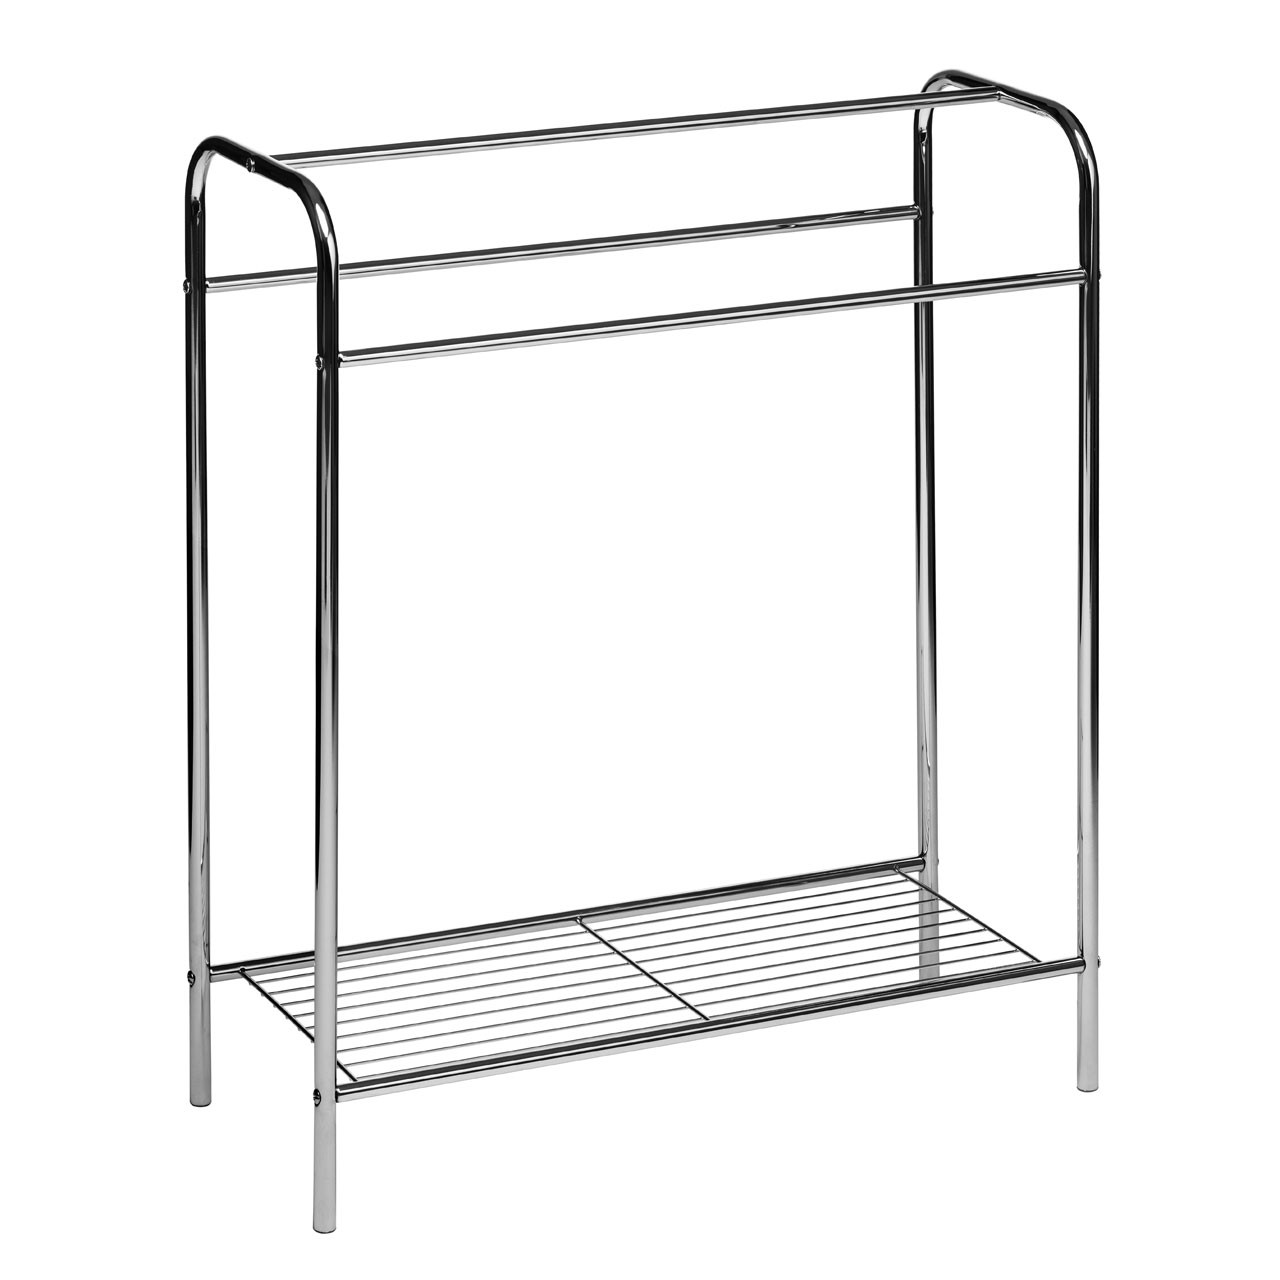 Prime Furnishing Floor Standing Towel Stand, Chrome